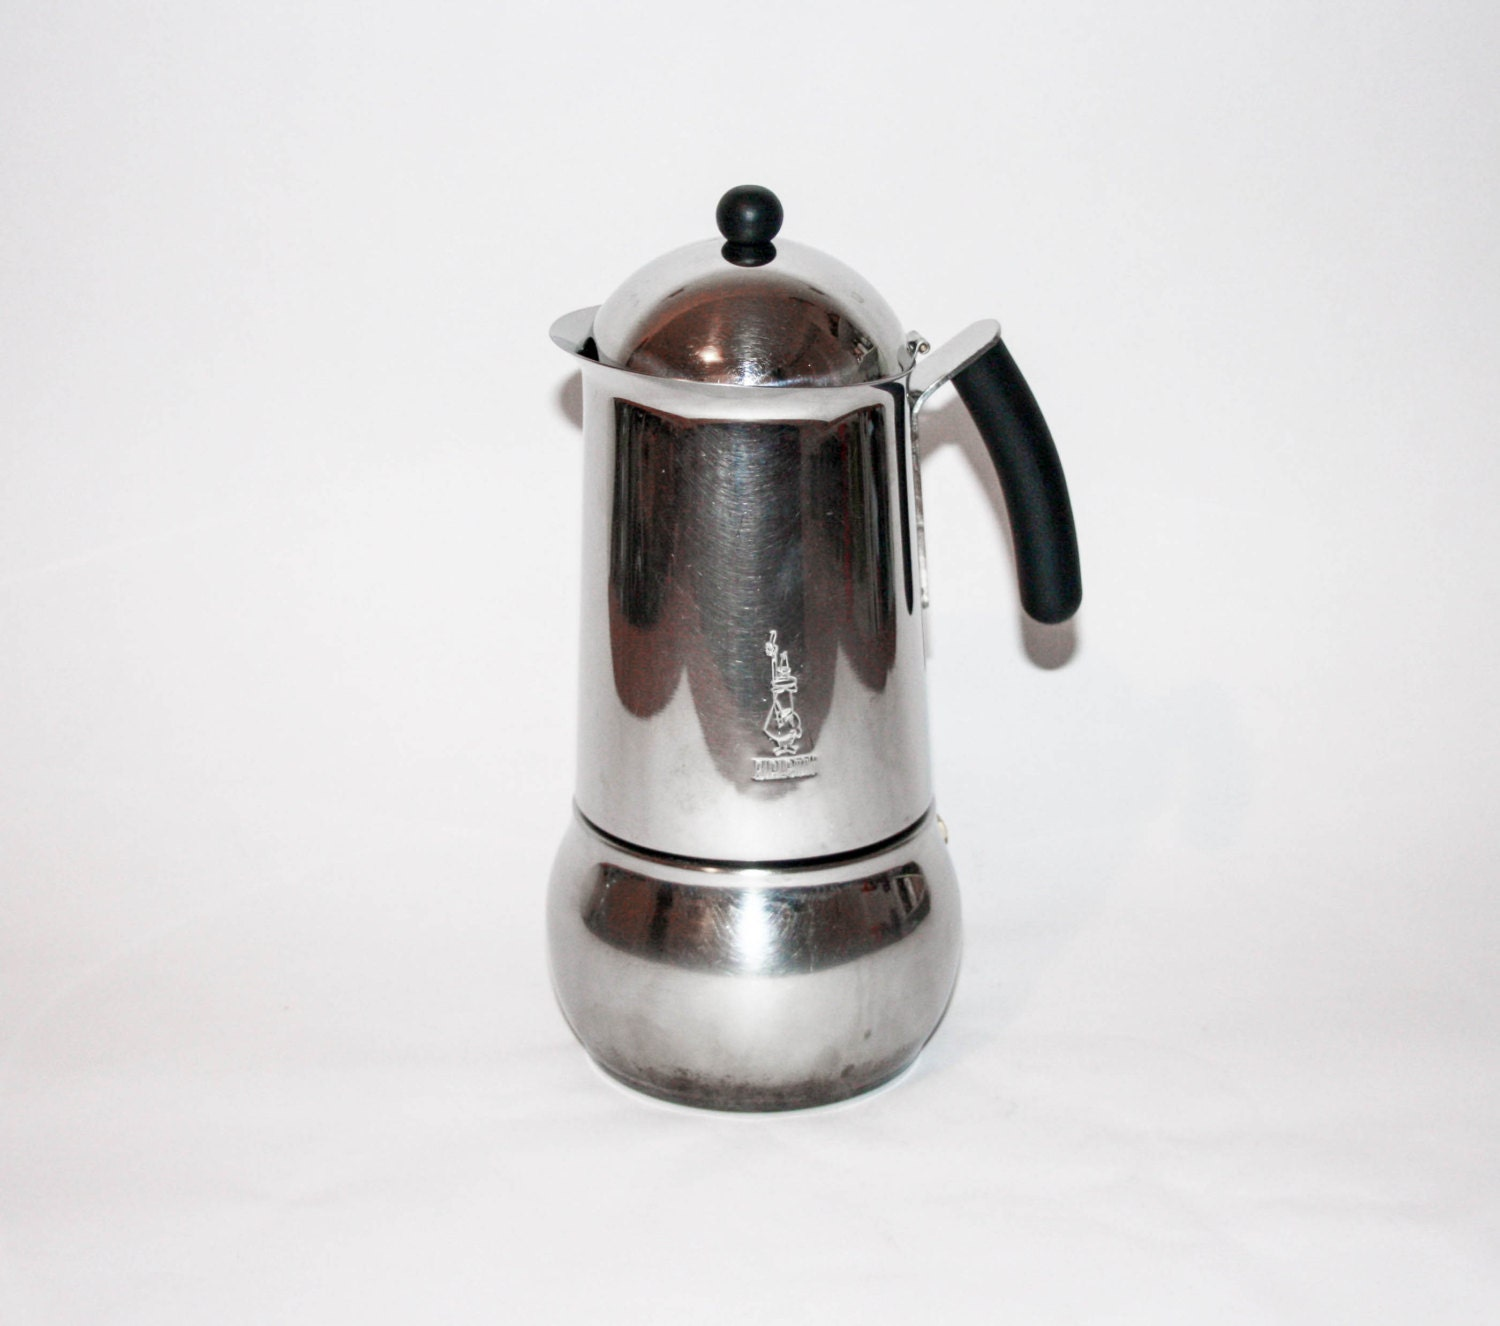 Italian Coffee Pot Maker Dies : Vintage Bialetti Stainless Steel Coffee Maker Made in Italy